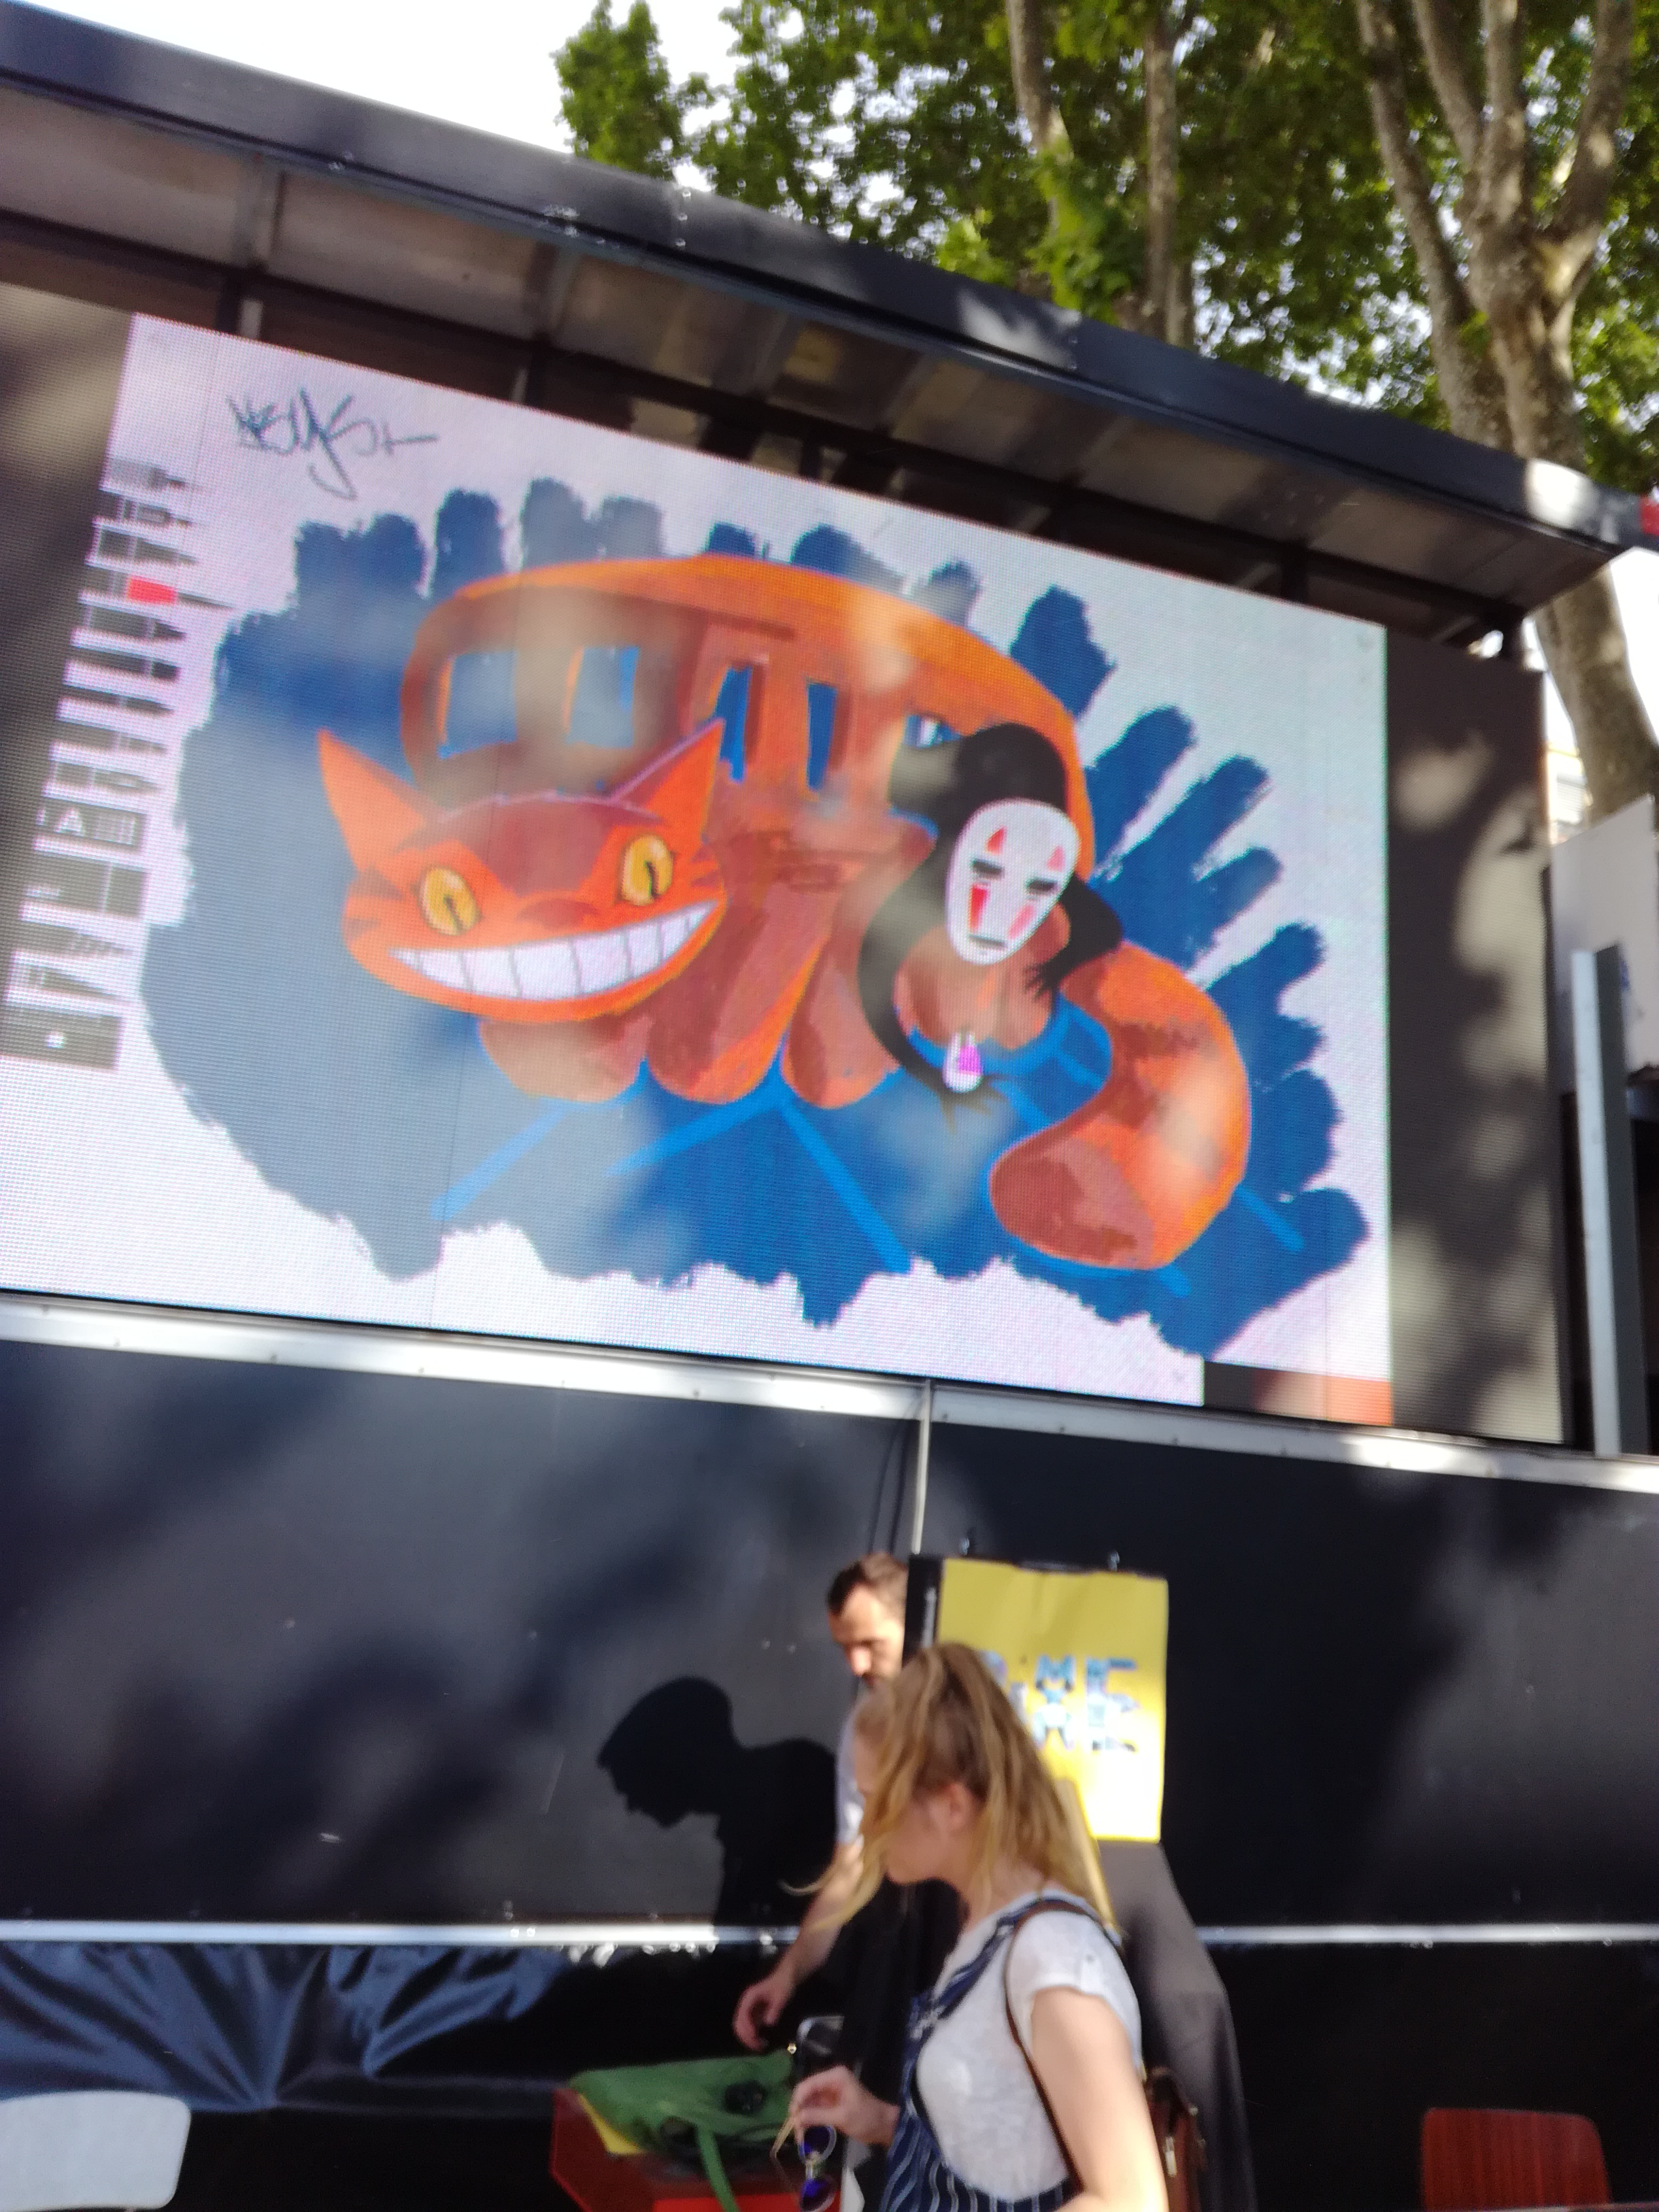 battle illustration lyon rixe artbyfriend - abys - sofffa - nuits sonores 2018